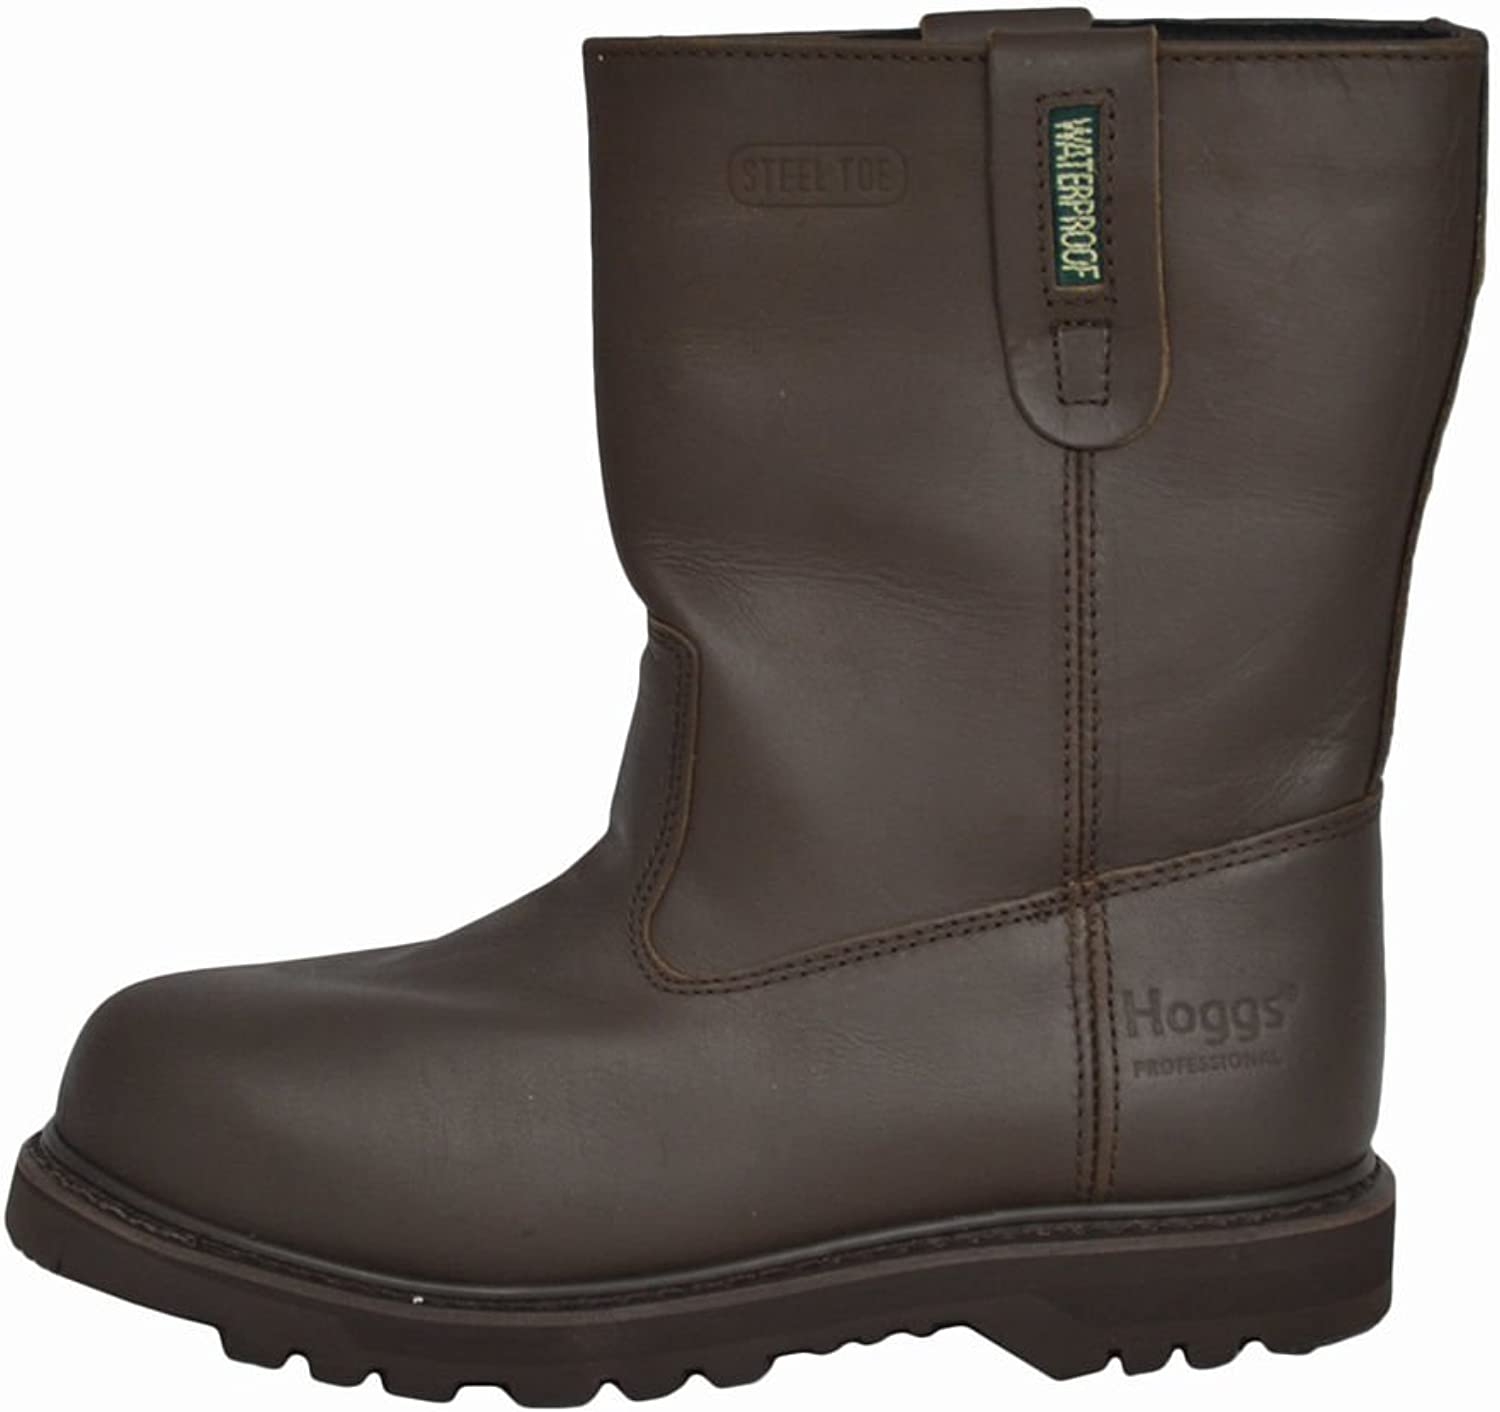 Hoggs of Fife Hurricane Rigger Boots